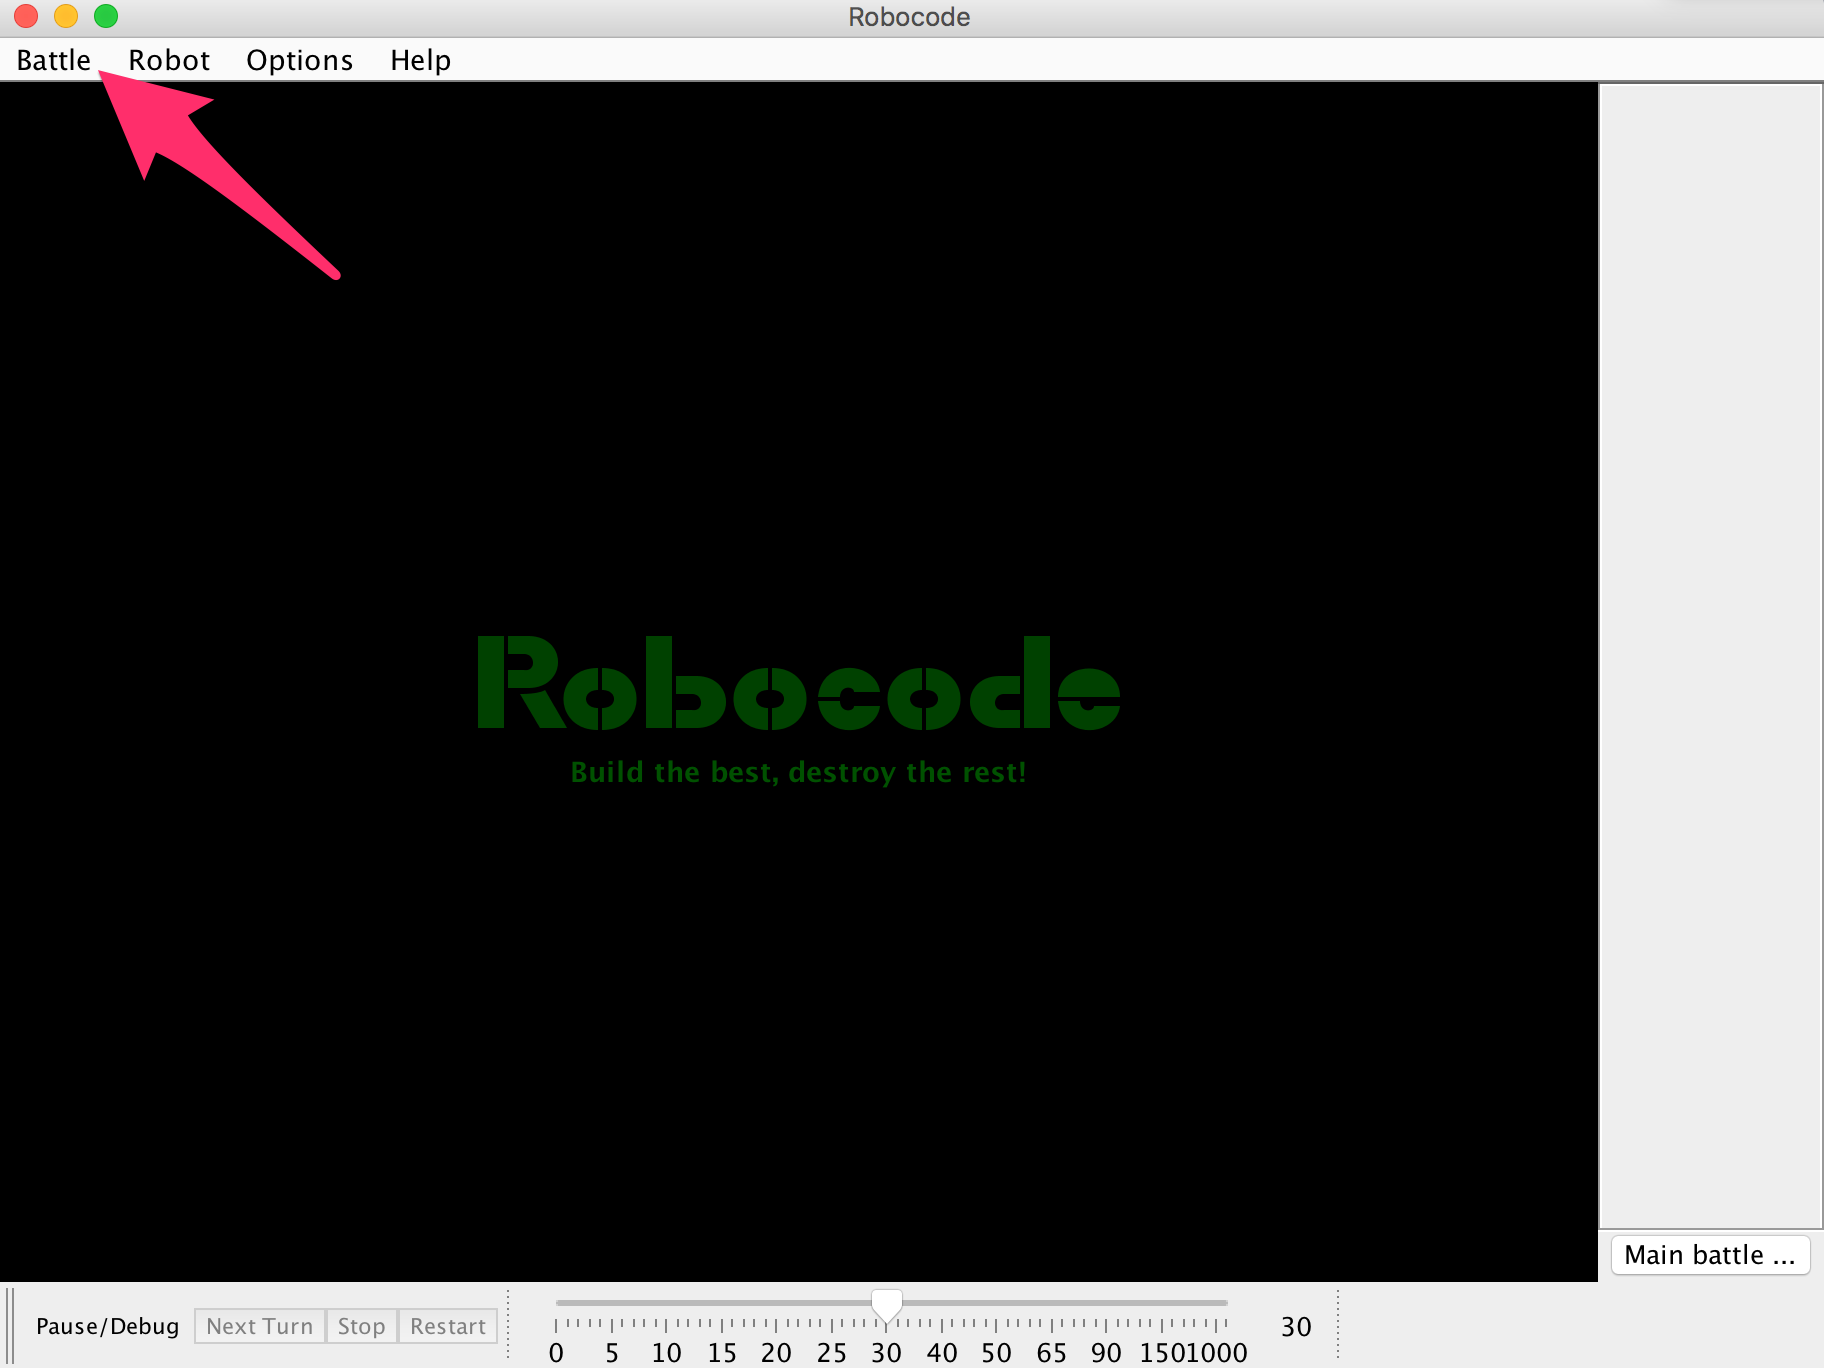 Banners_and_Alerts_と_Robocode.png